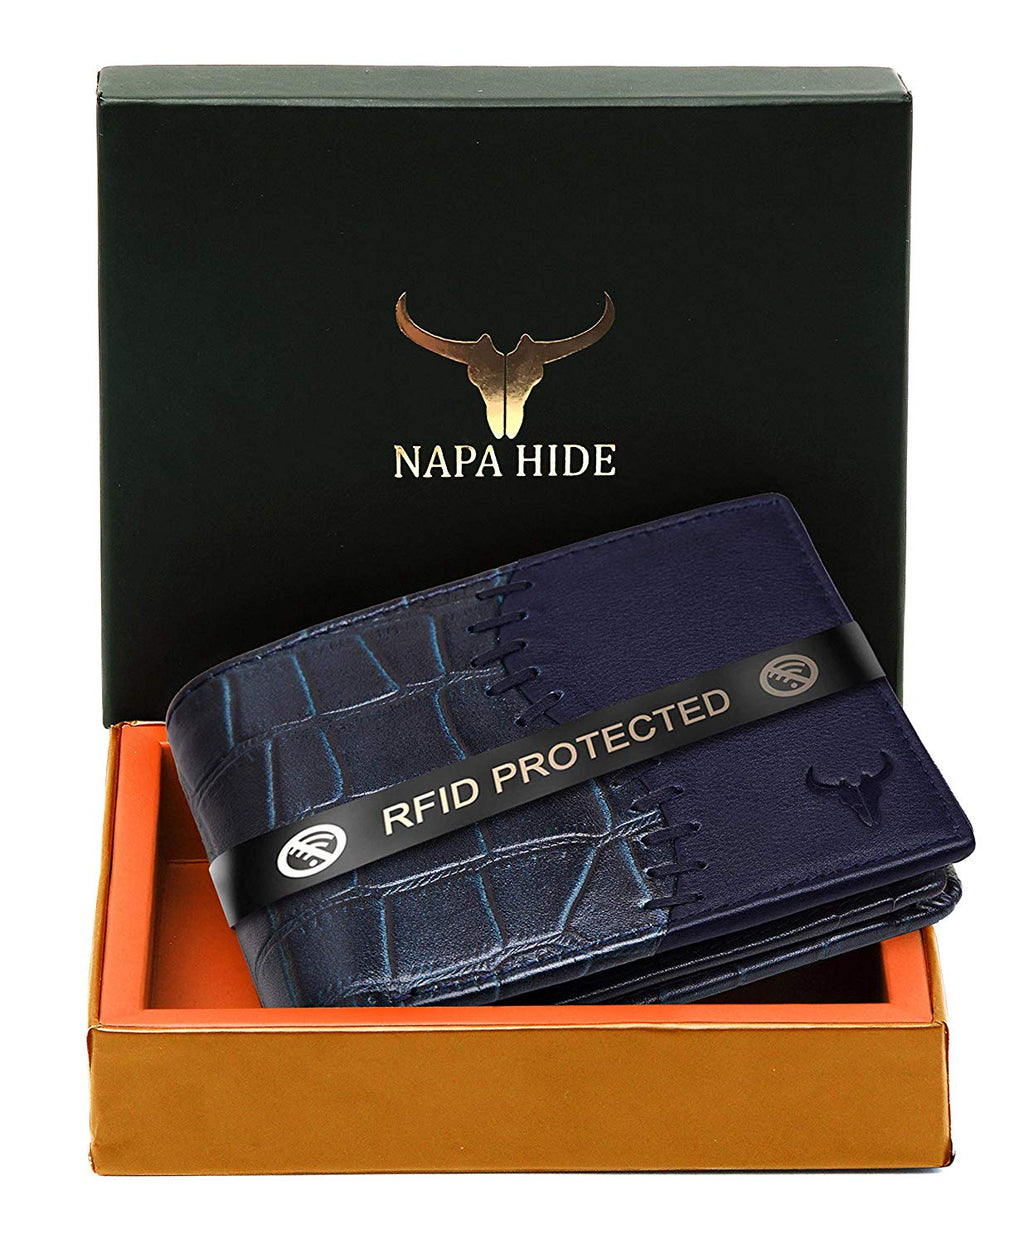 Napa Hide Blue Men's Wallet (NPH005 BLU) - WILDHORN